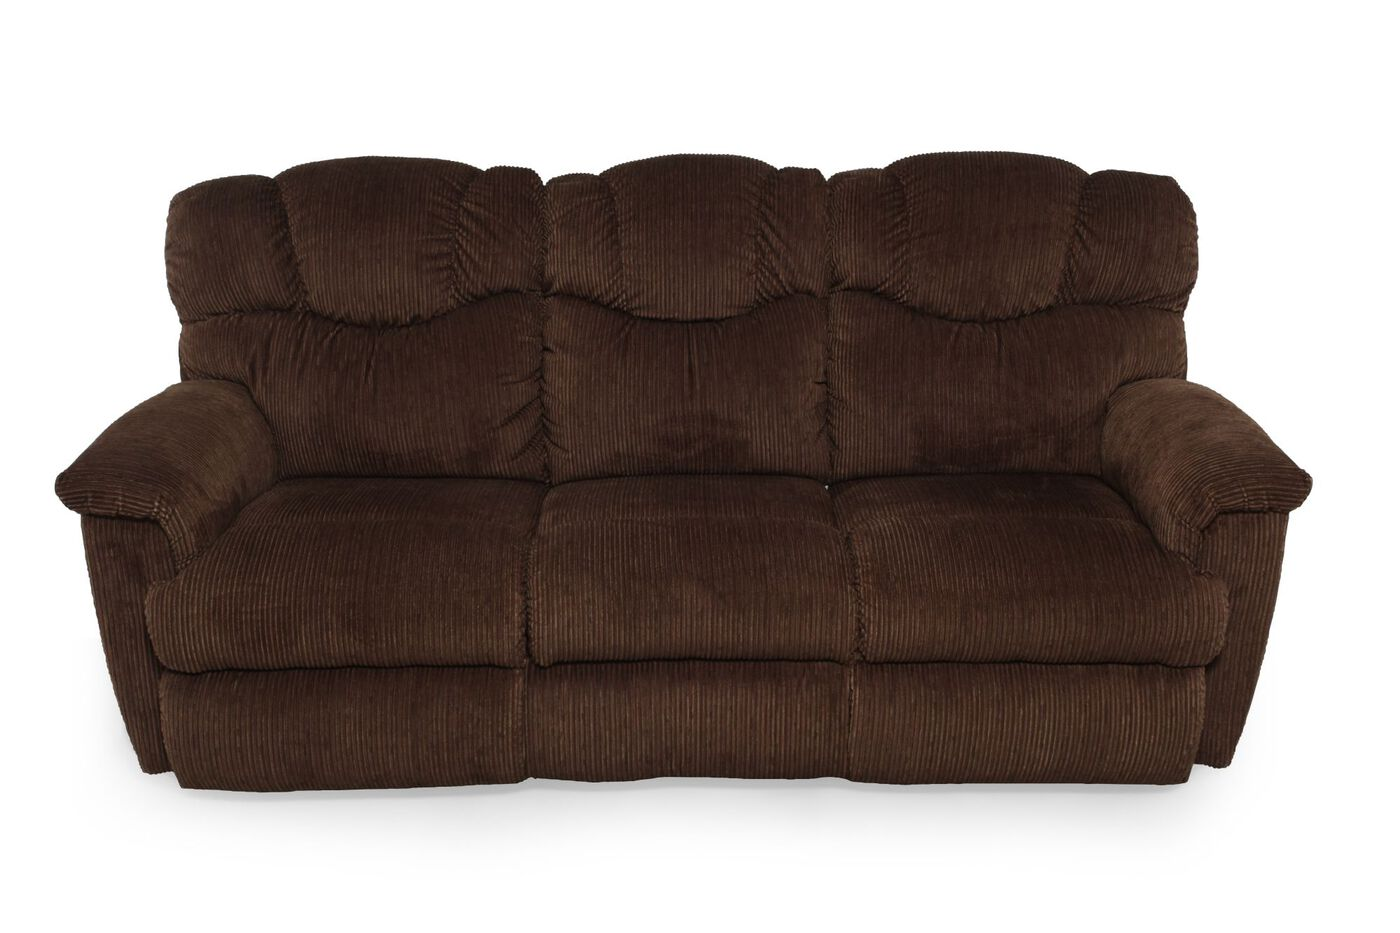 Power reclining corduroy sofa in dark brown mathis for Brown corduroy couch